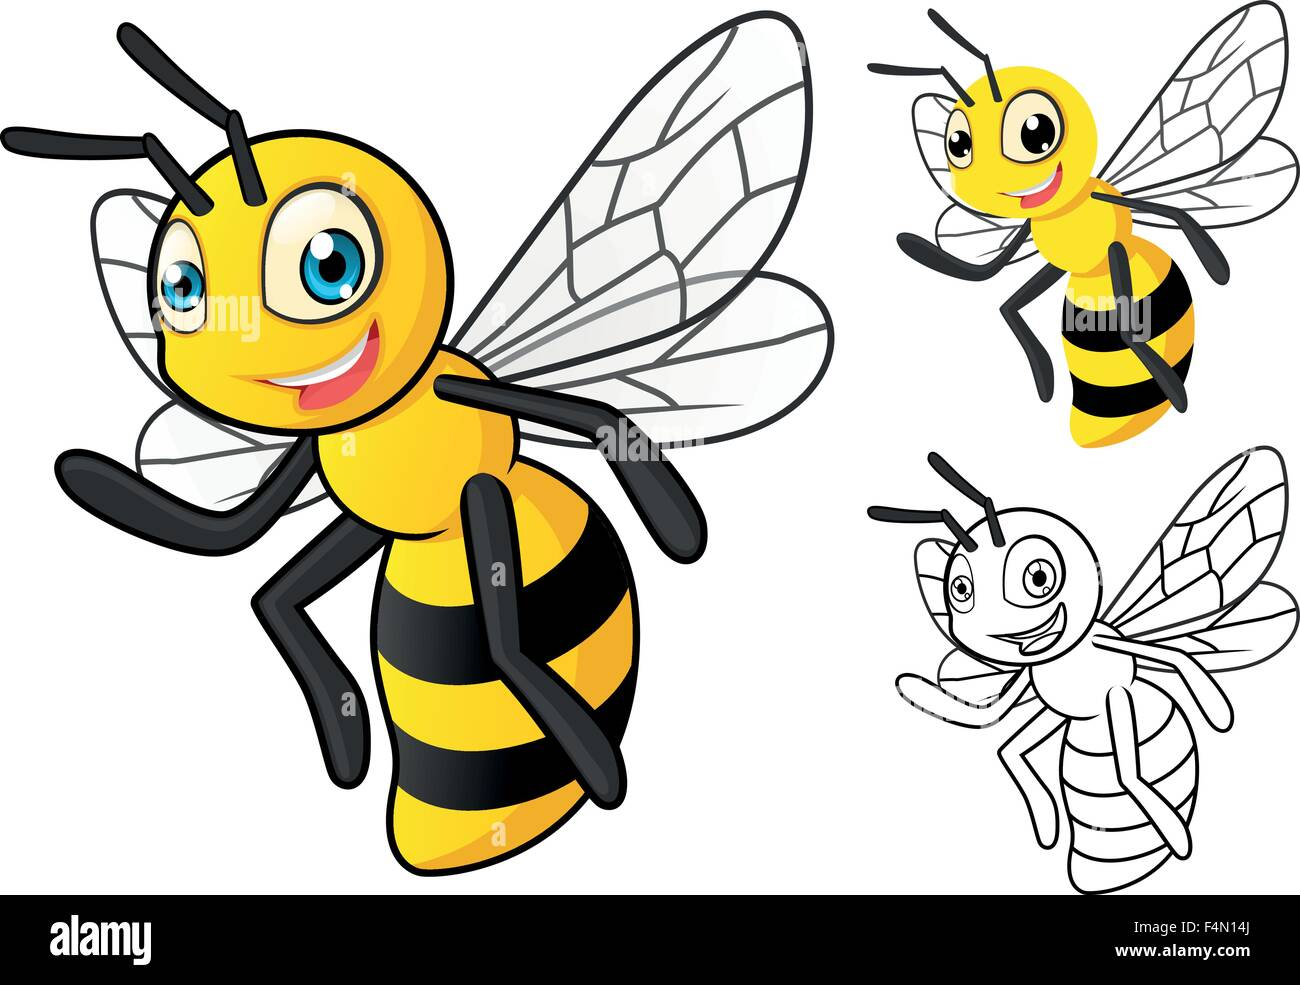 Detailed Honey Bee Cartoon Character with Flat Design and Line Art Black and White Version - Stock Vector